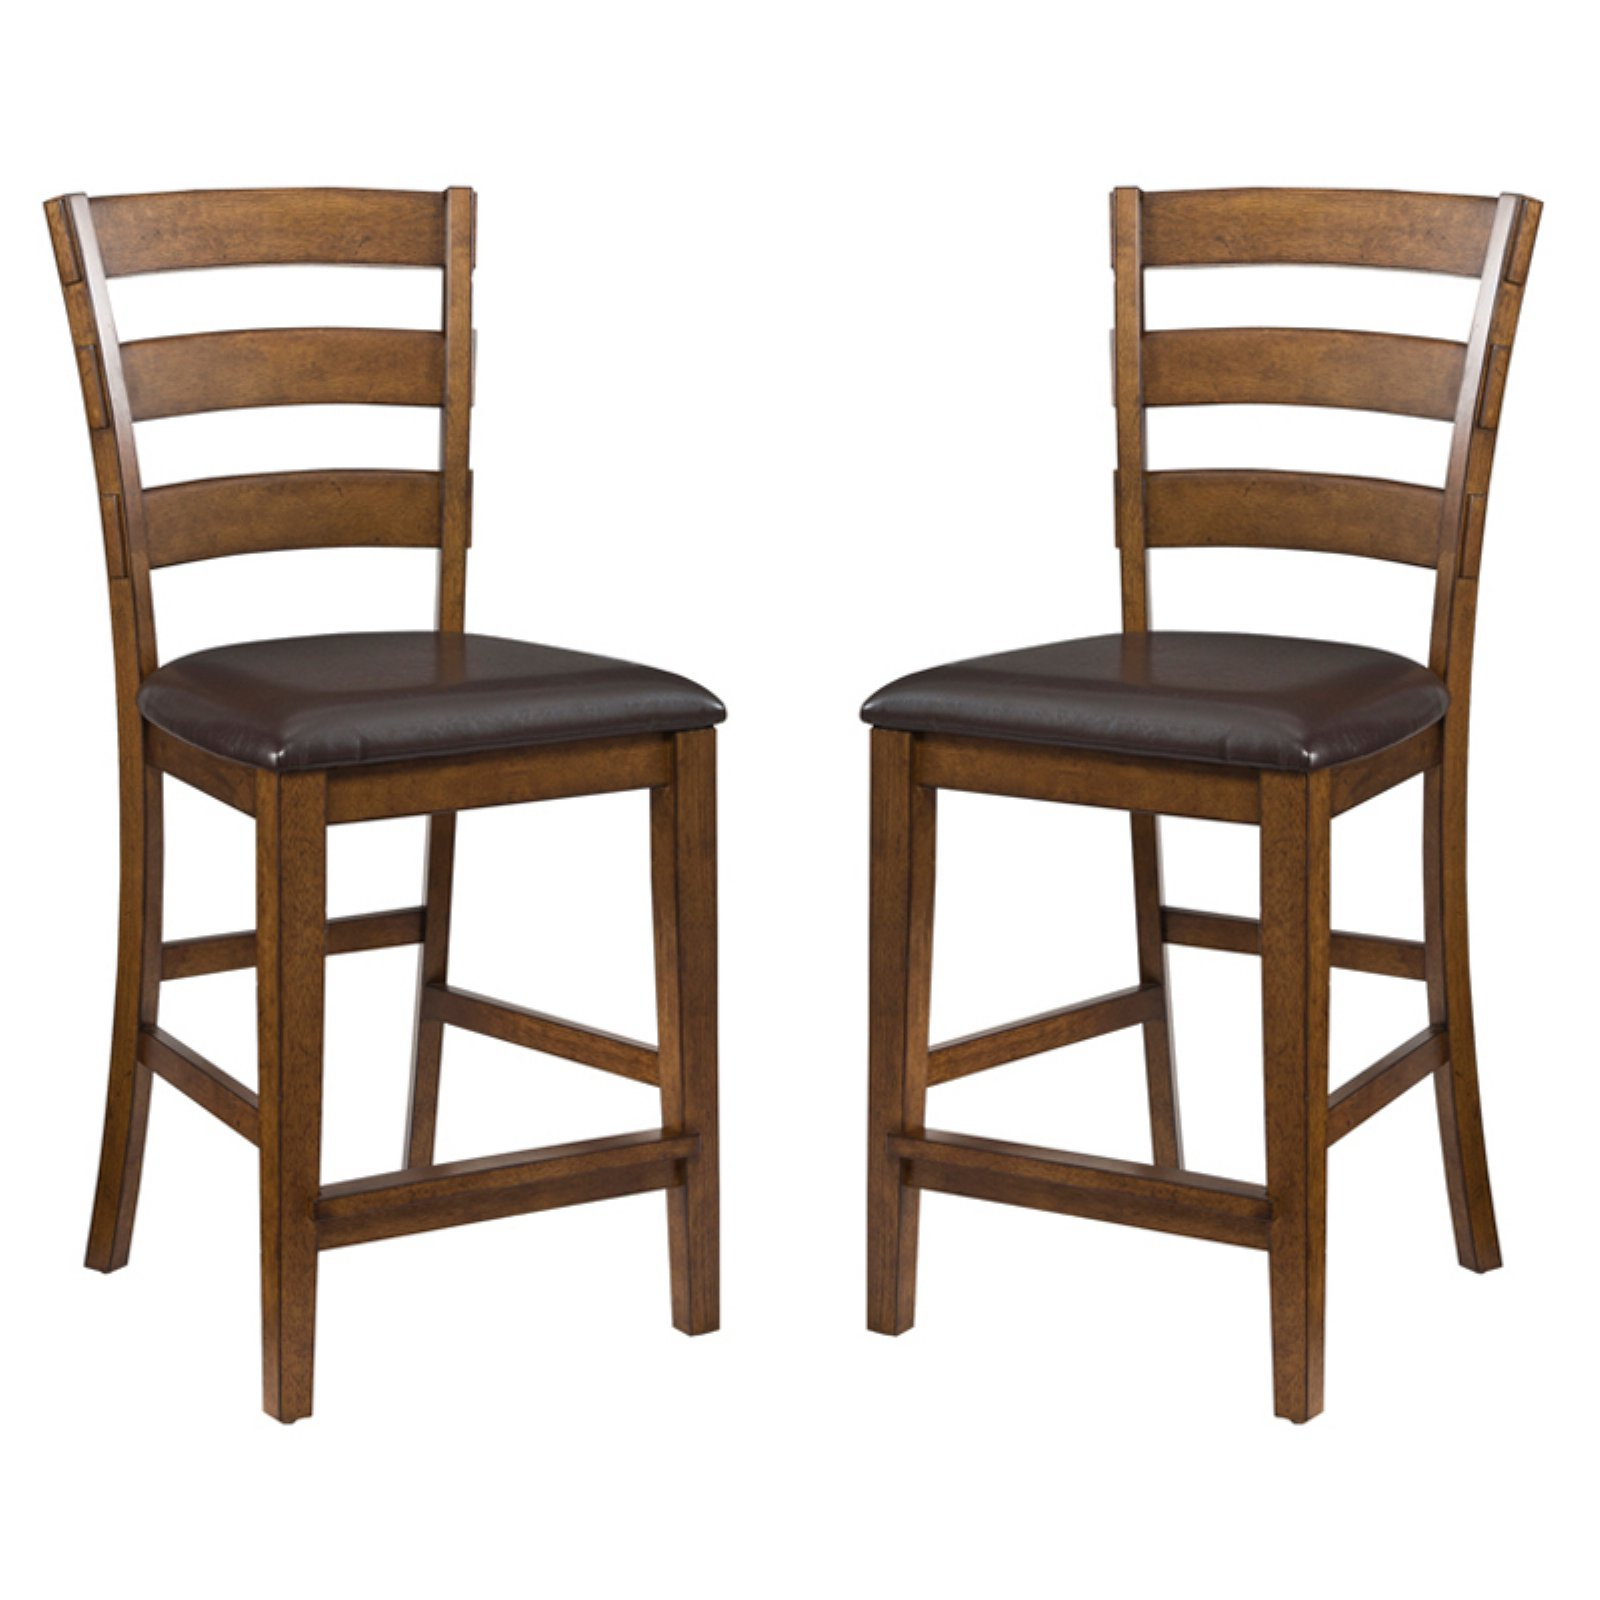 "Imagio Home by Intercon San Thomas 24"" Ladderback Barstool with Upholstered Seat, Set of 2, Warm Brandy"